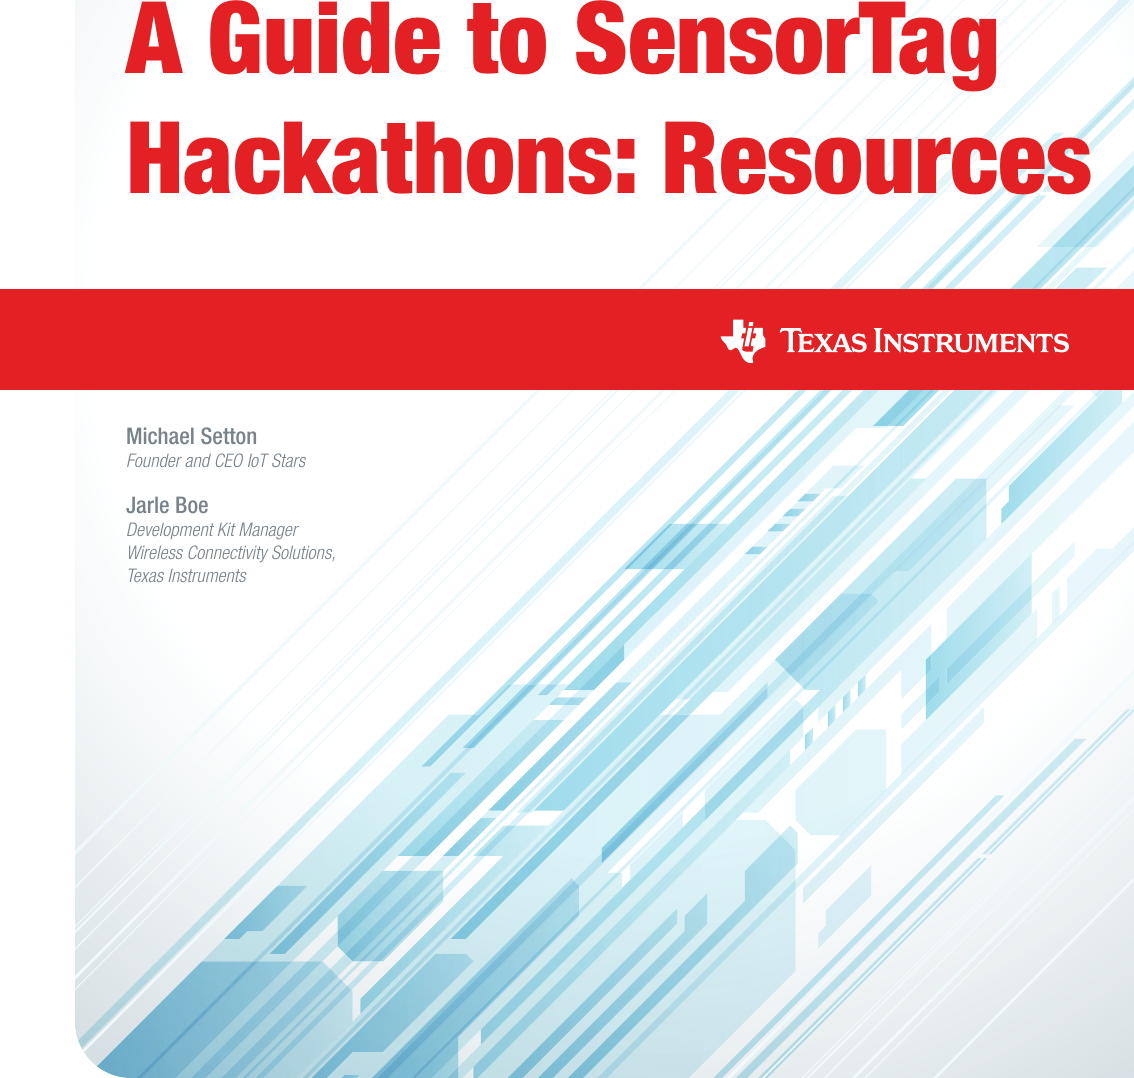 A Guide To SensorTag Hackathons: Resources